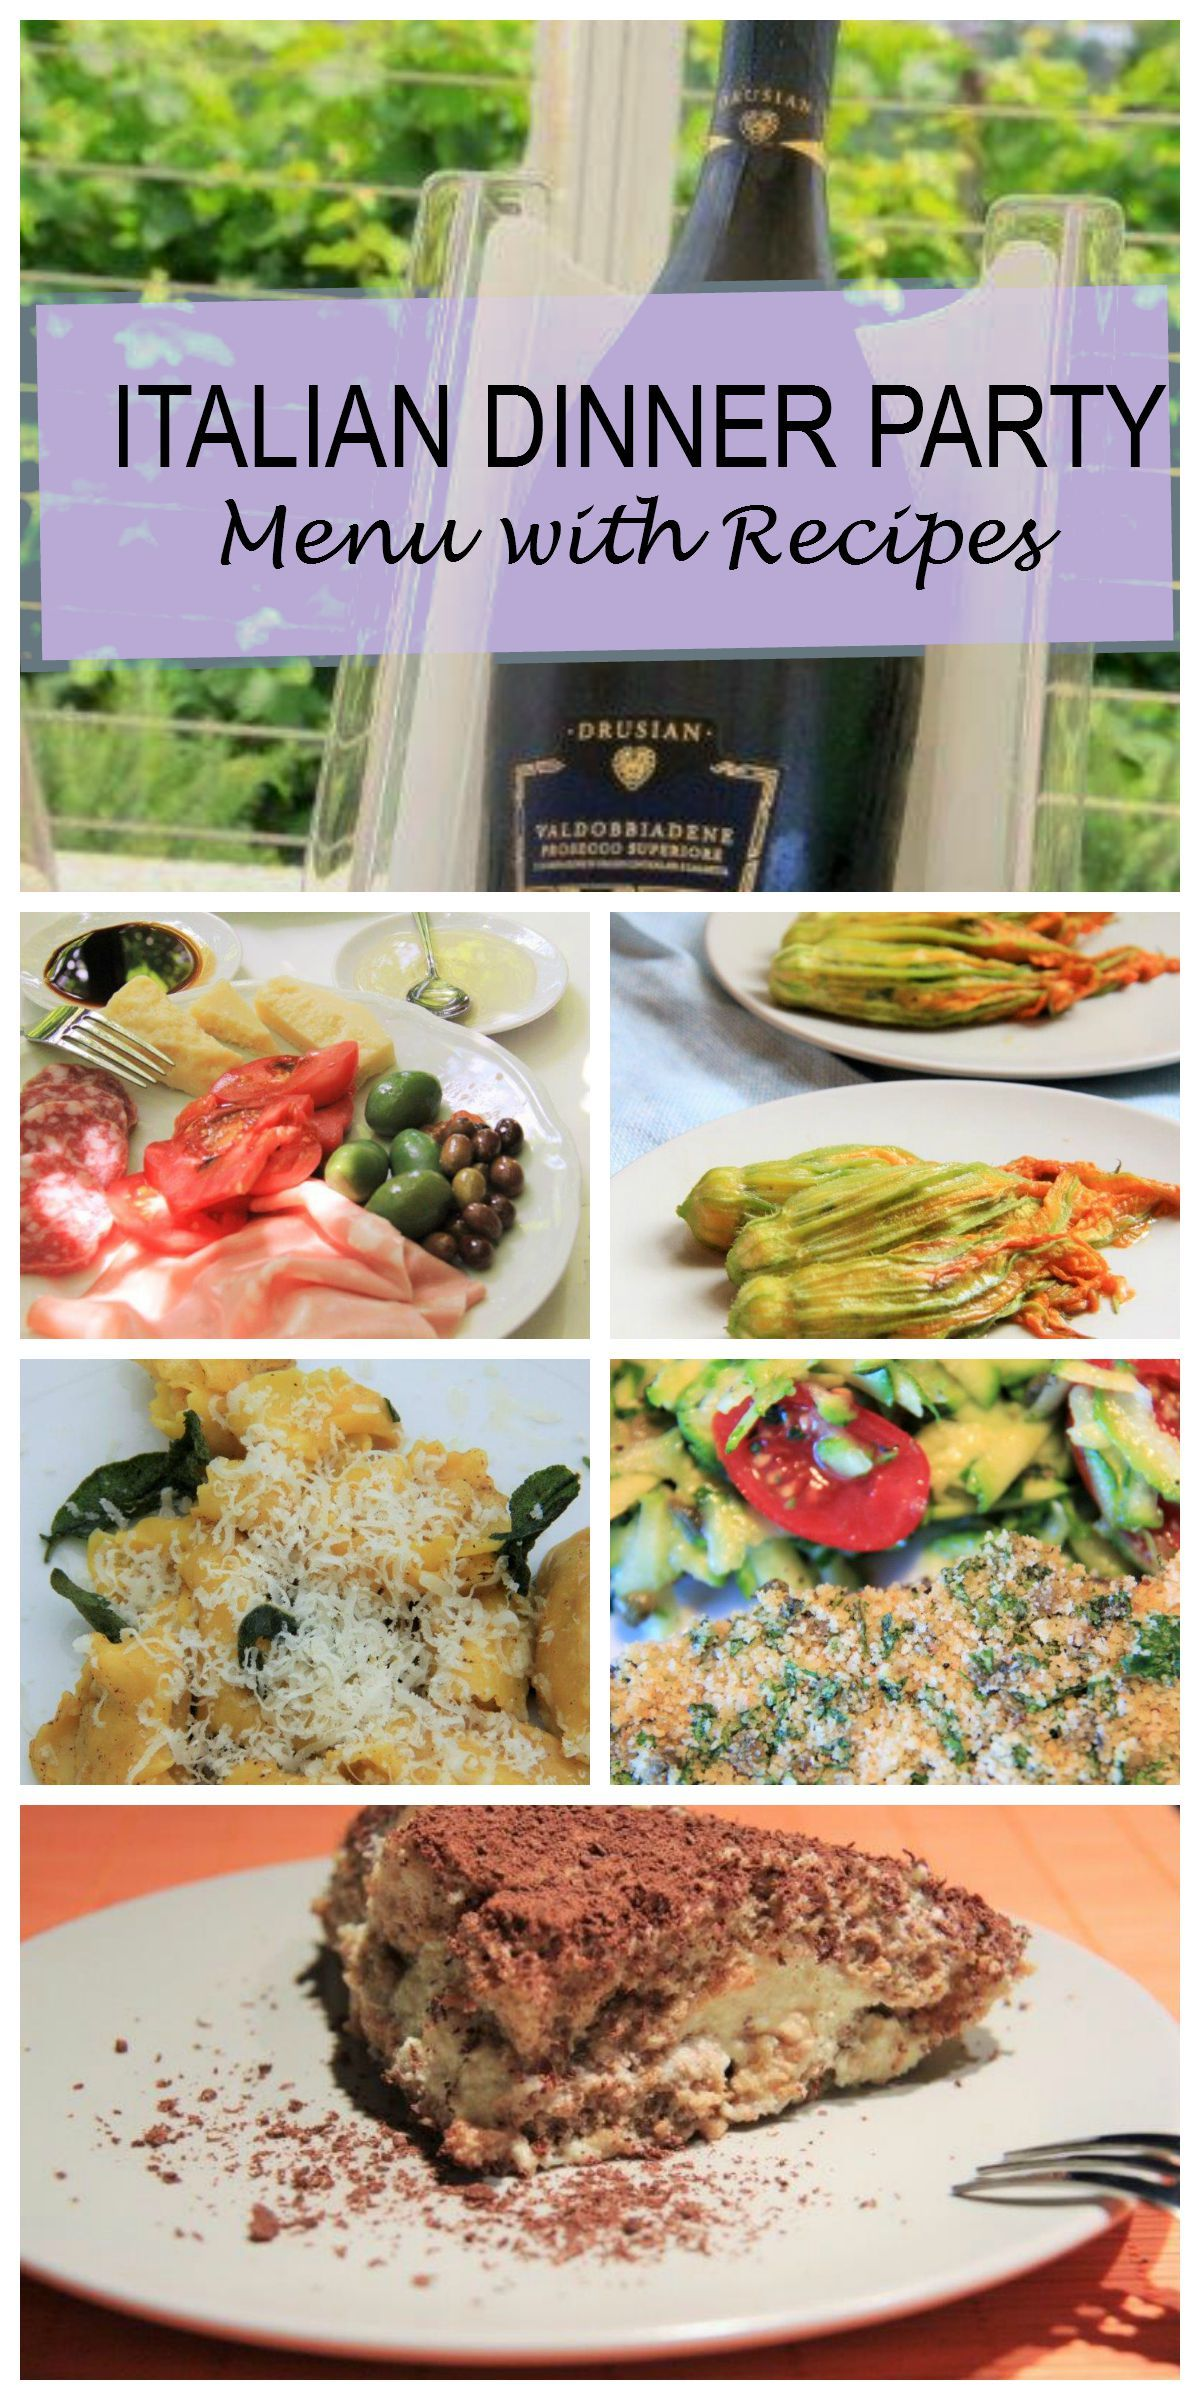 Birthday Dinner Party Menu Ideas Part - 23: Food · Italian Dinner Party Menu With Recipes ...